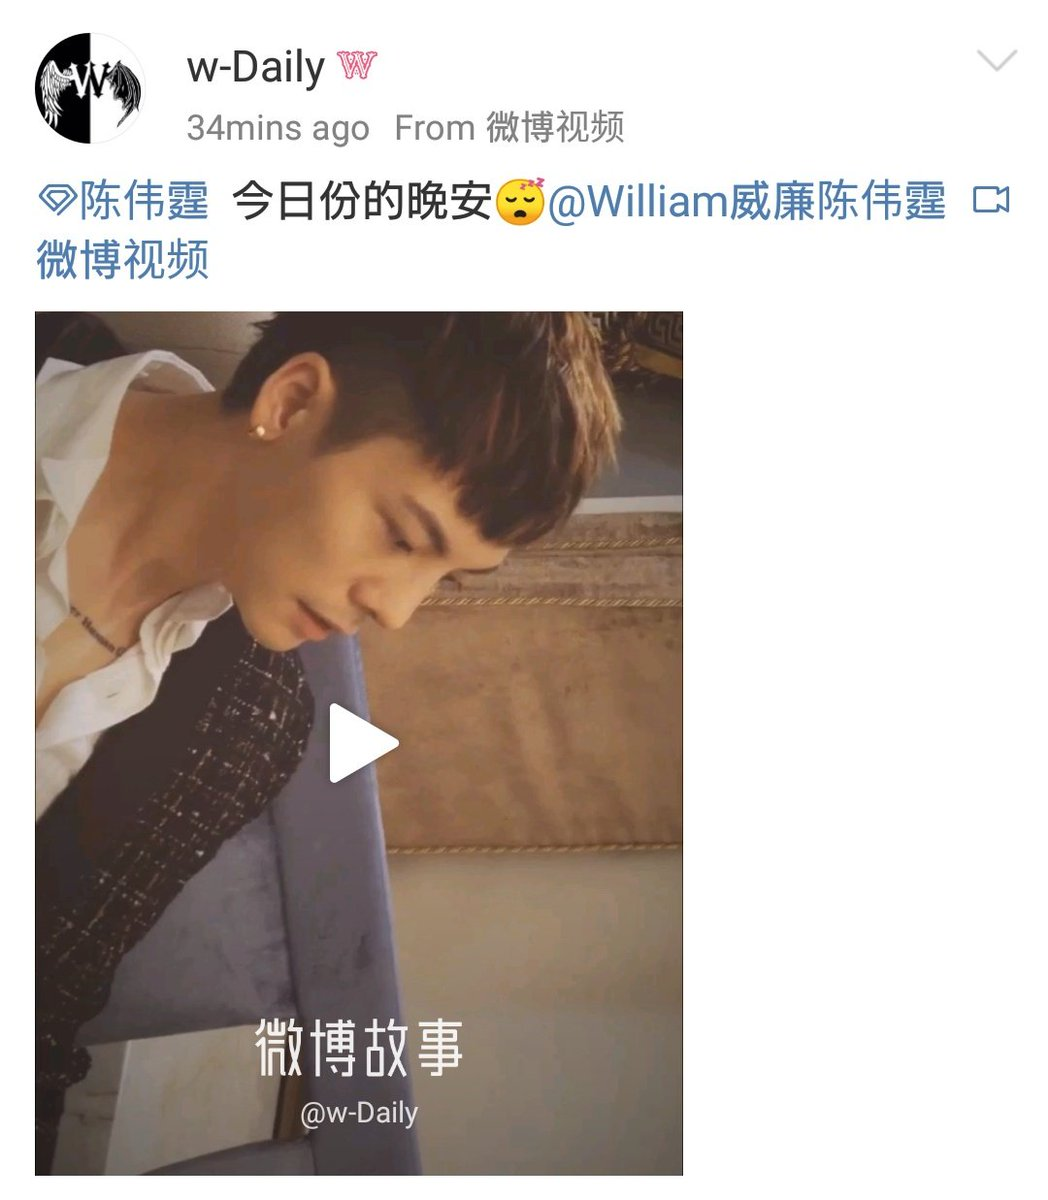 20190623 w-Daily weibo movie update❤️ #陳偉霆 #ウィリアム・チャン #陈伟霆 #WilliamChan #williamchanwaiting